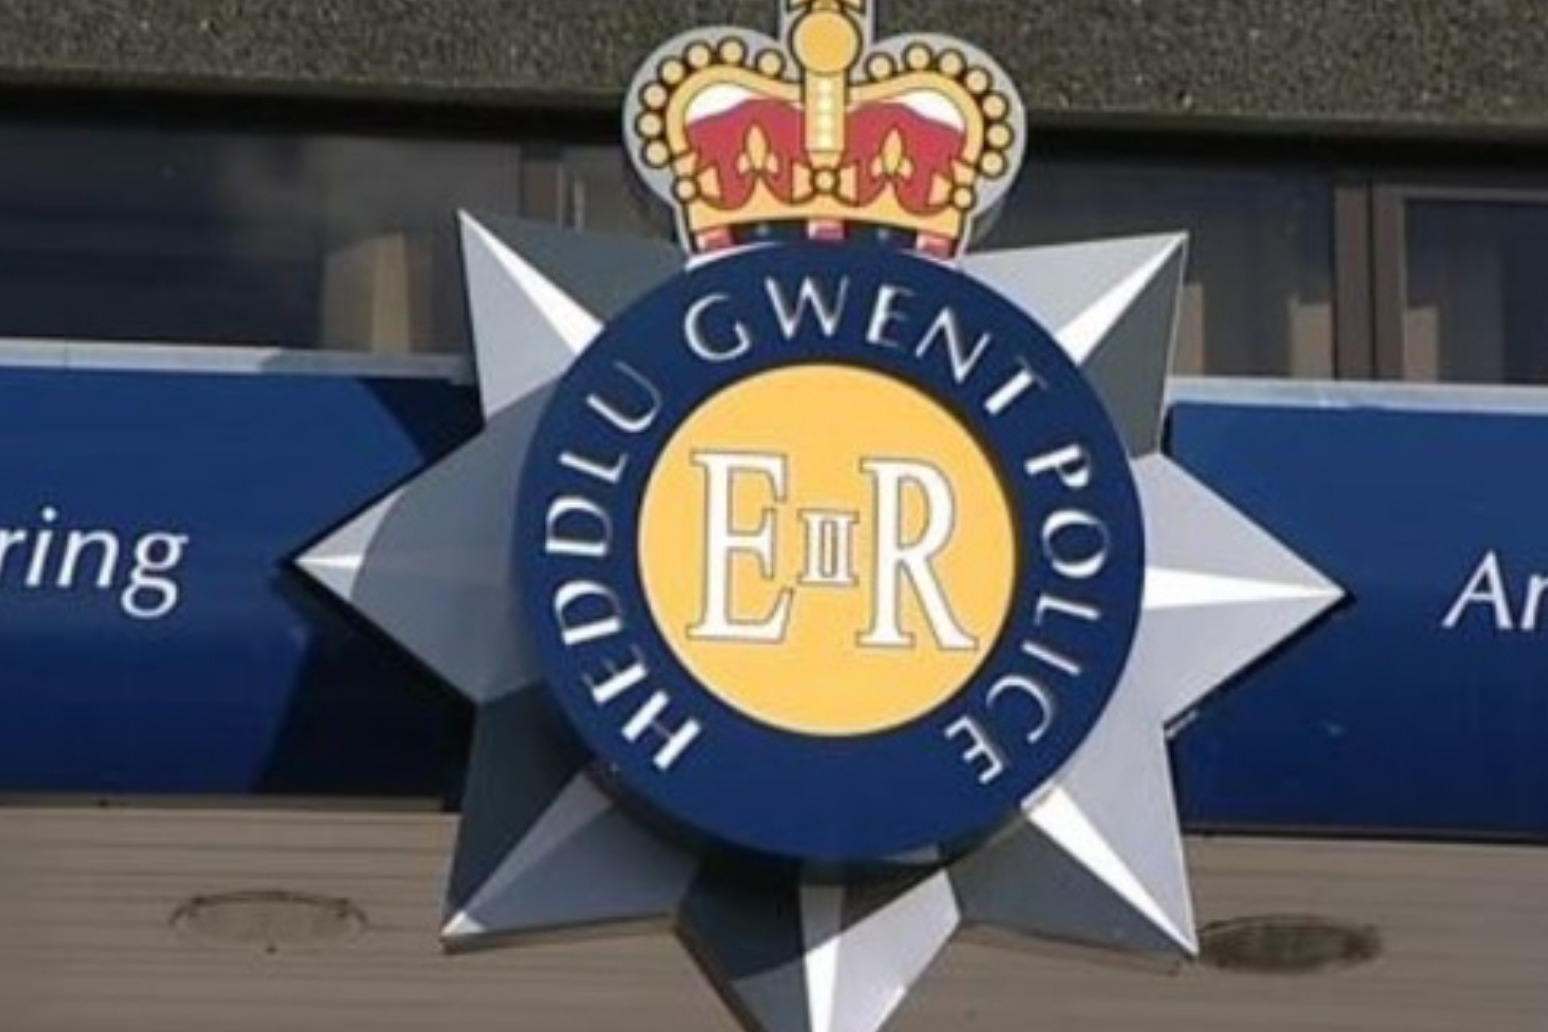 Police investigate death of 13 year old boy in South Wales